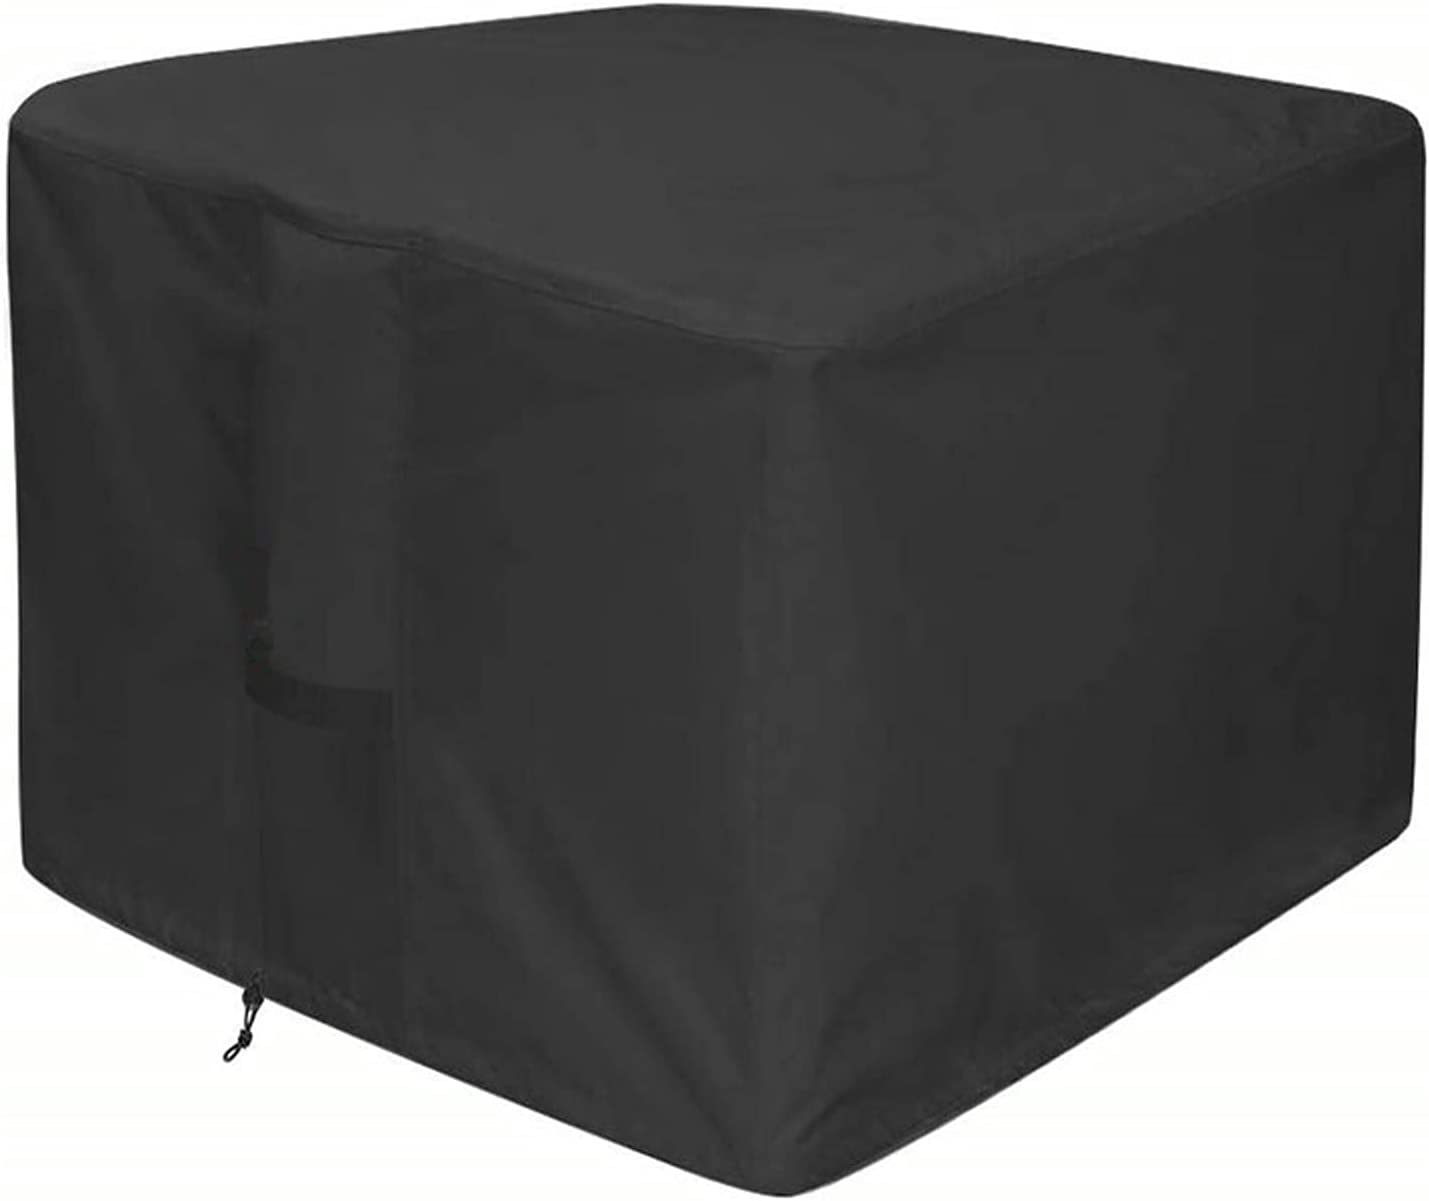 Rectangle Patio New Free Shipping Table Cover Outdoor Heavy 96x96x35in Duty Deluxe